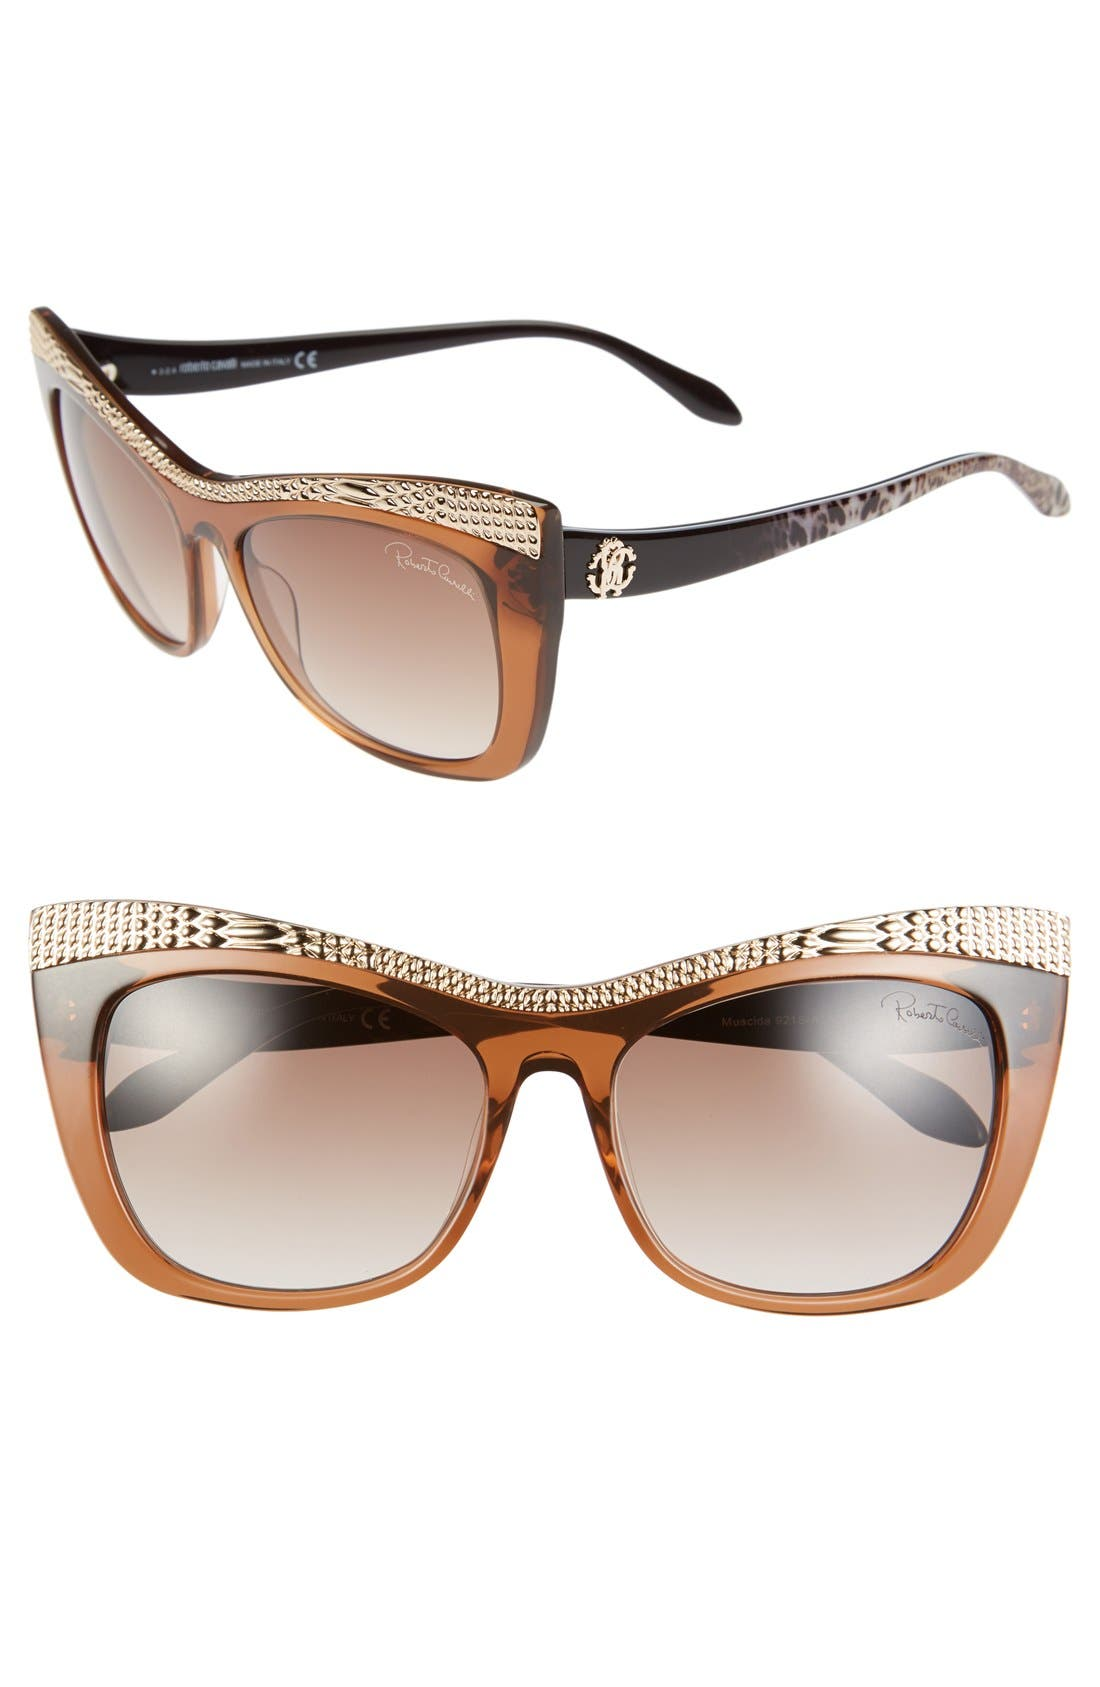 Roberto Cavalli 'Muscida' 56mm Cat Eye Sunglasses